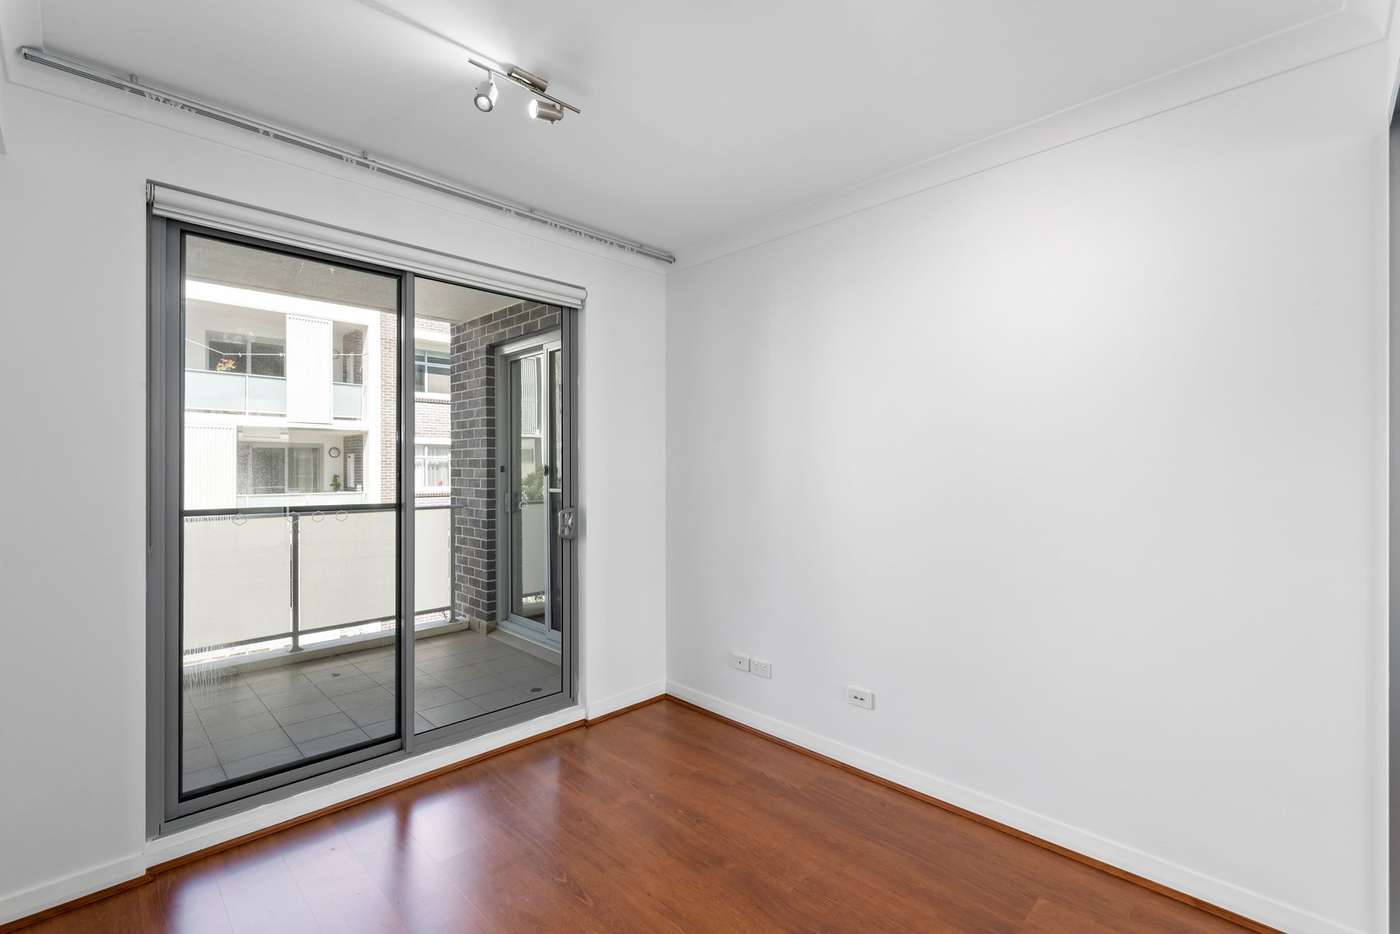 Sixth view of Homely apartment listing, 72/212-216 Mona Vale Road, St Ives NSW 2075